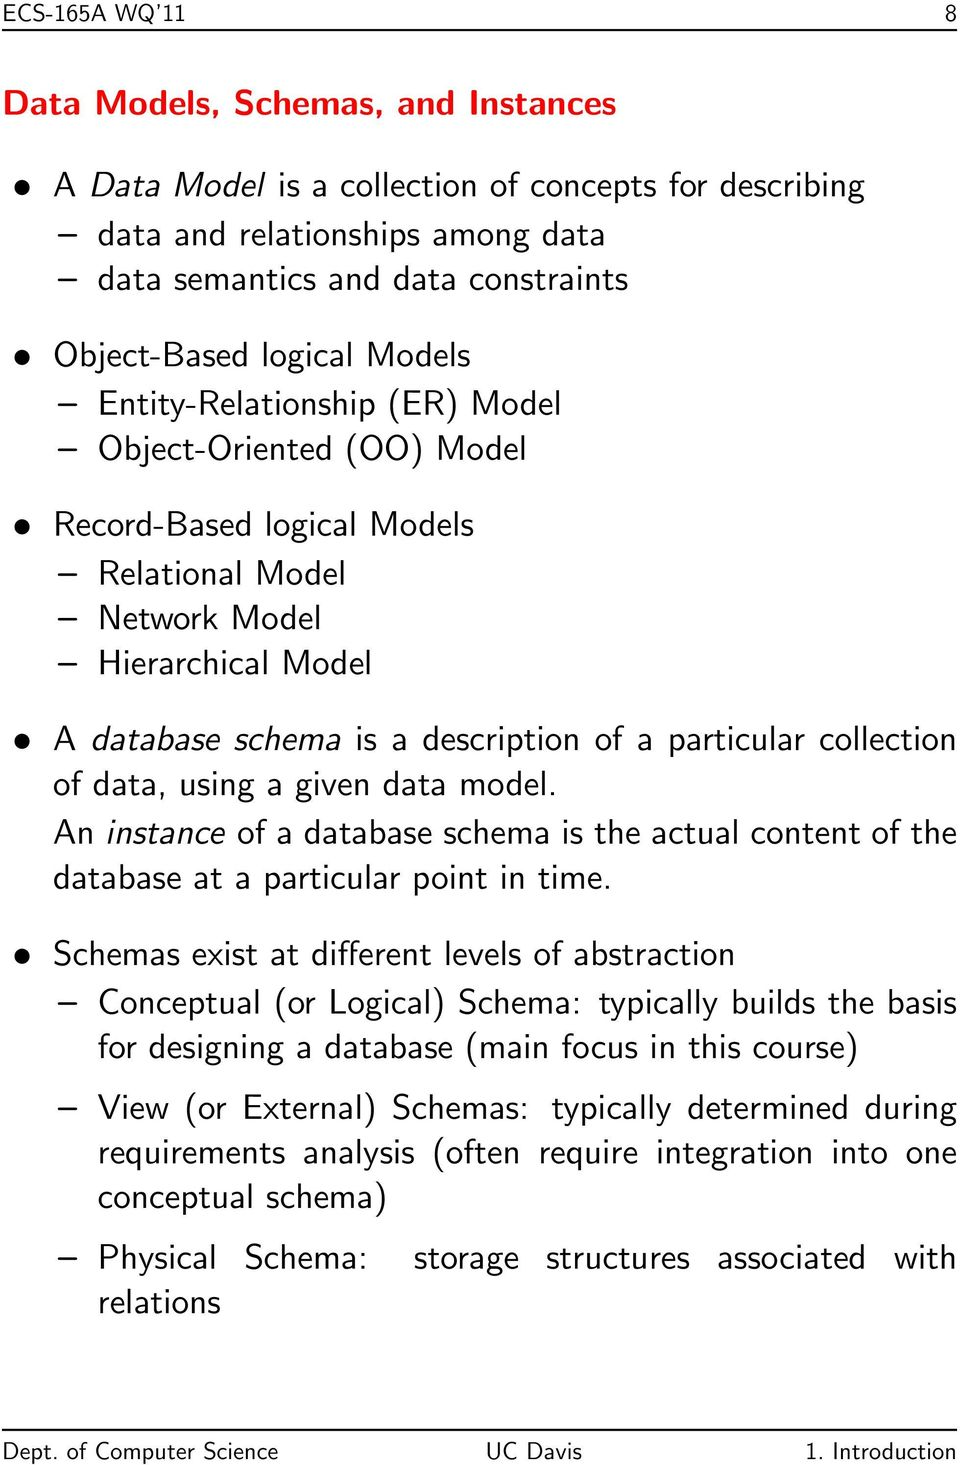 collection of data, using a given data model. An instance of a database schema is the actual content of the database at a particular point in time.